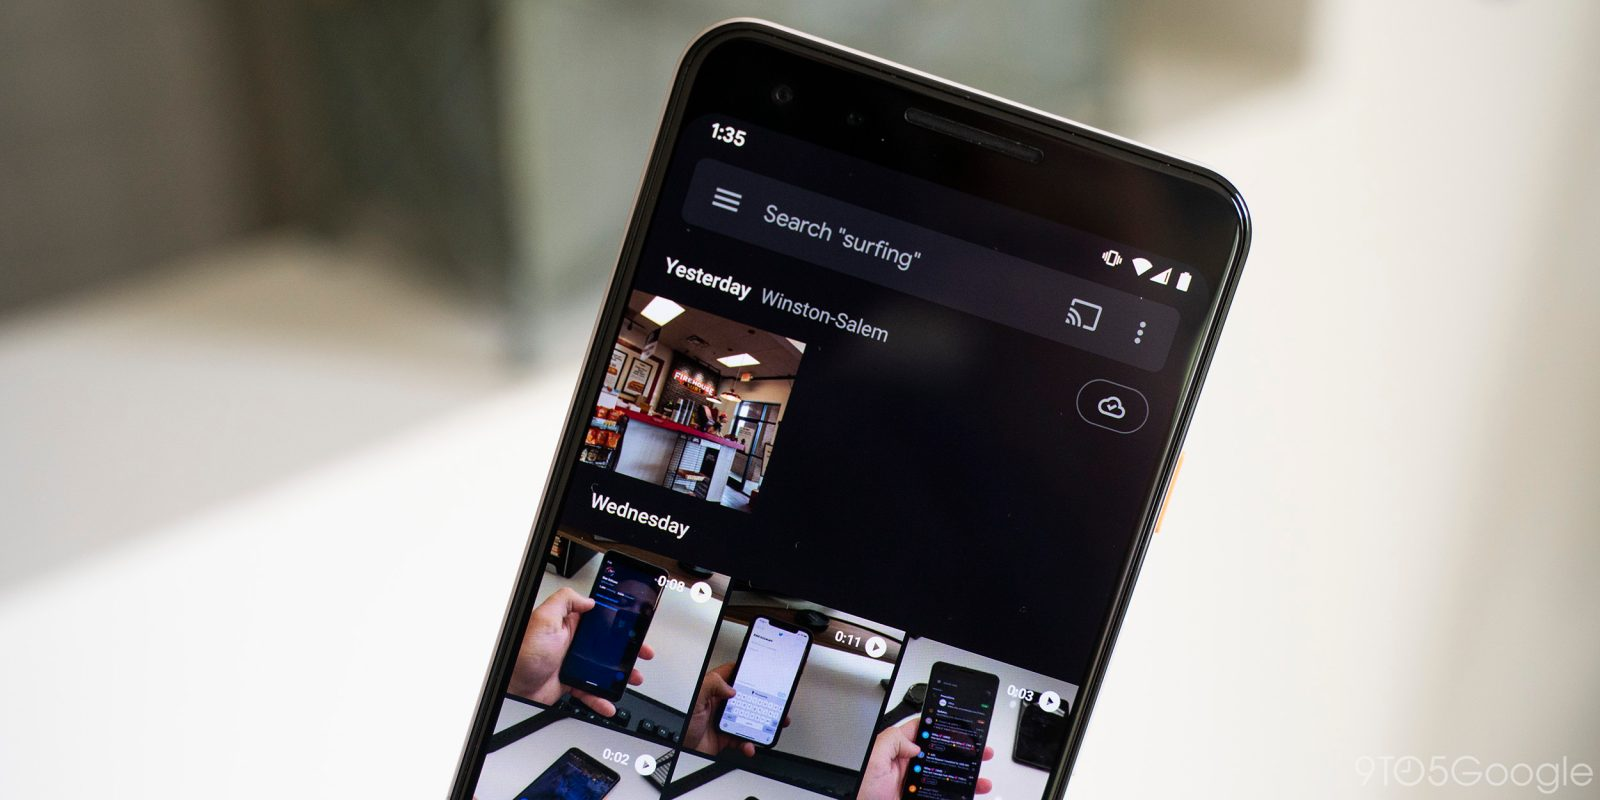 Google Photos can now search for text that appears in images